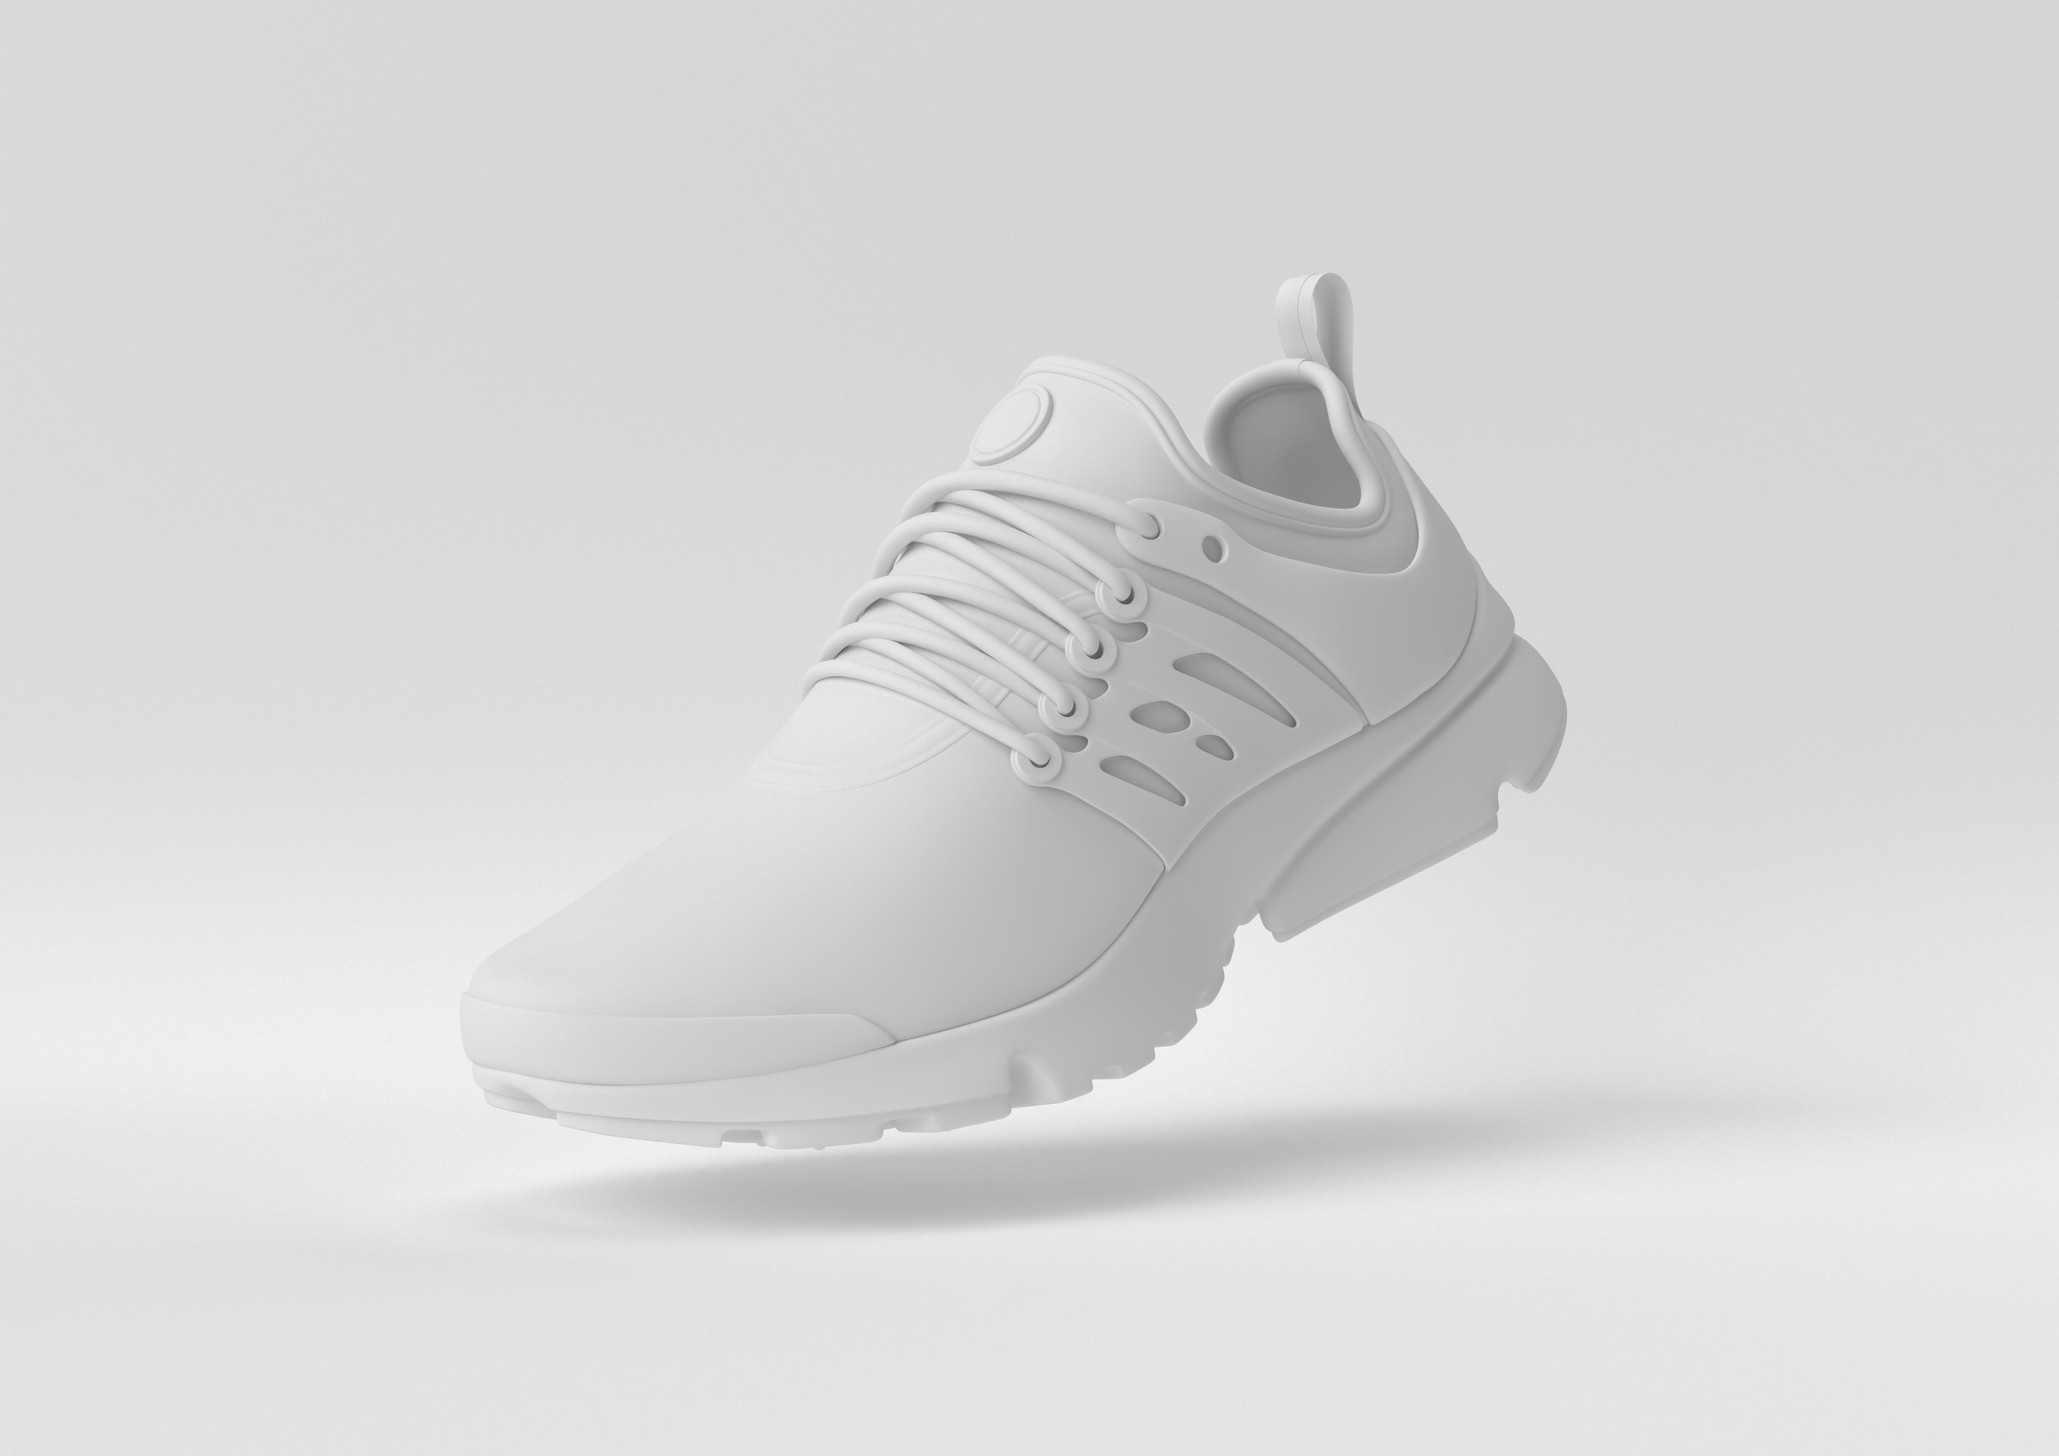 Concept white shoe with white background. 3d render, 3d illustration.